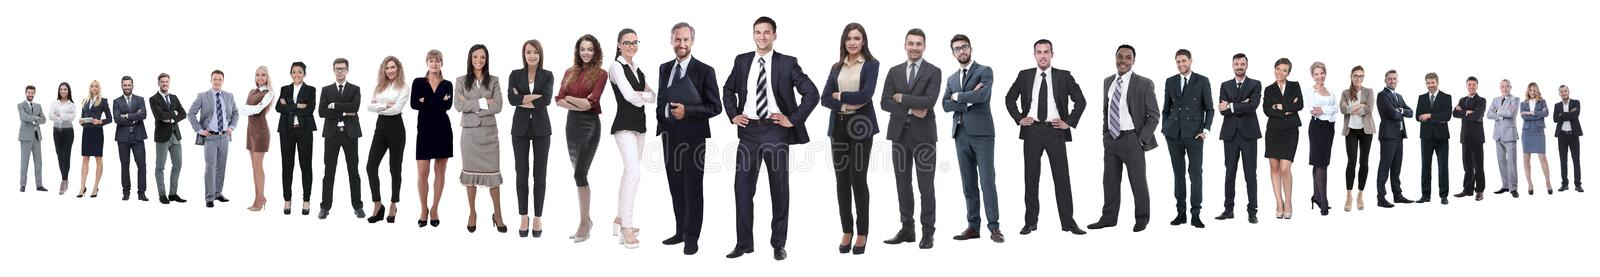 Panoramic photo of a professional numerous business team royalty free stock images